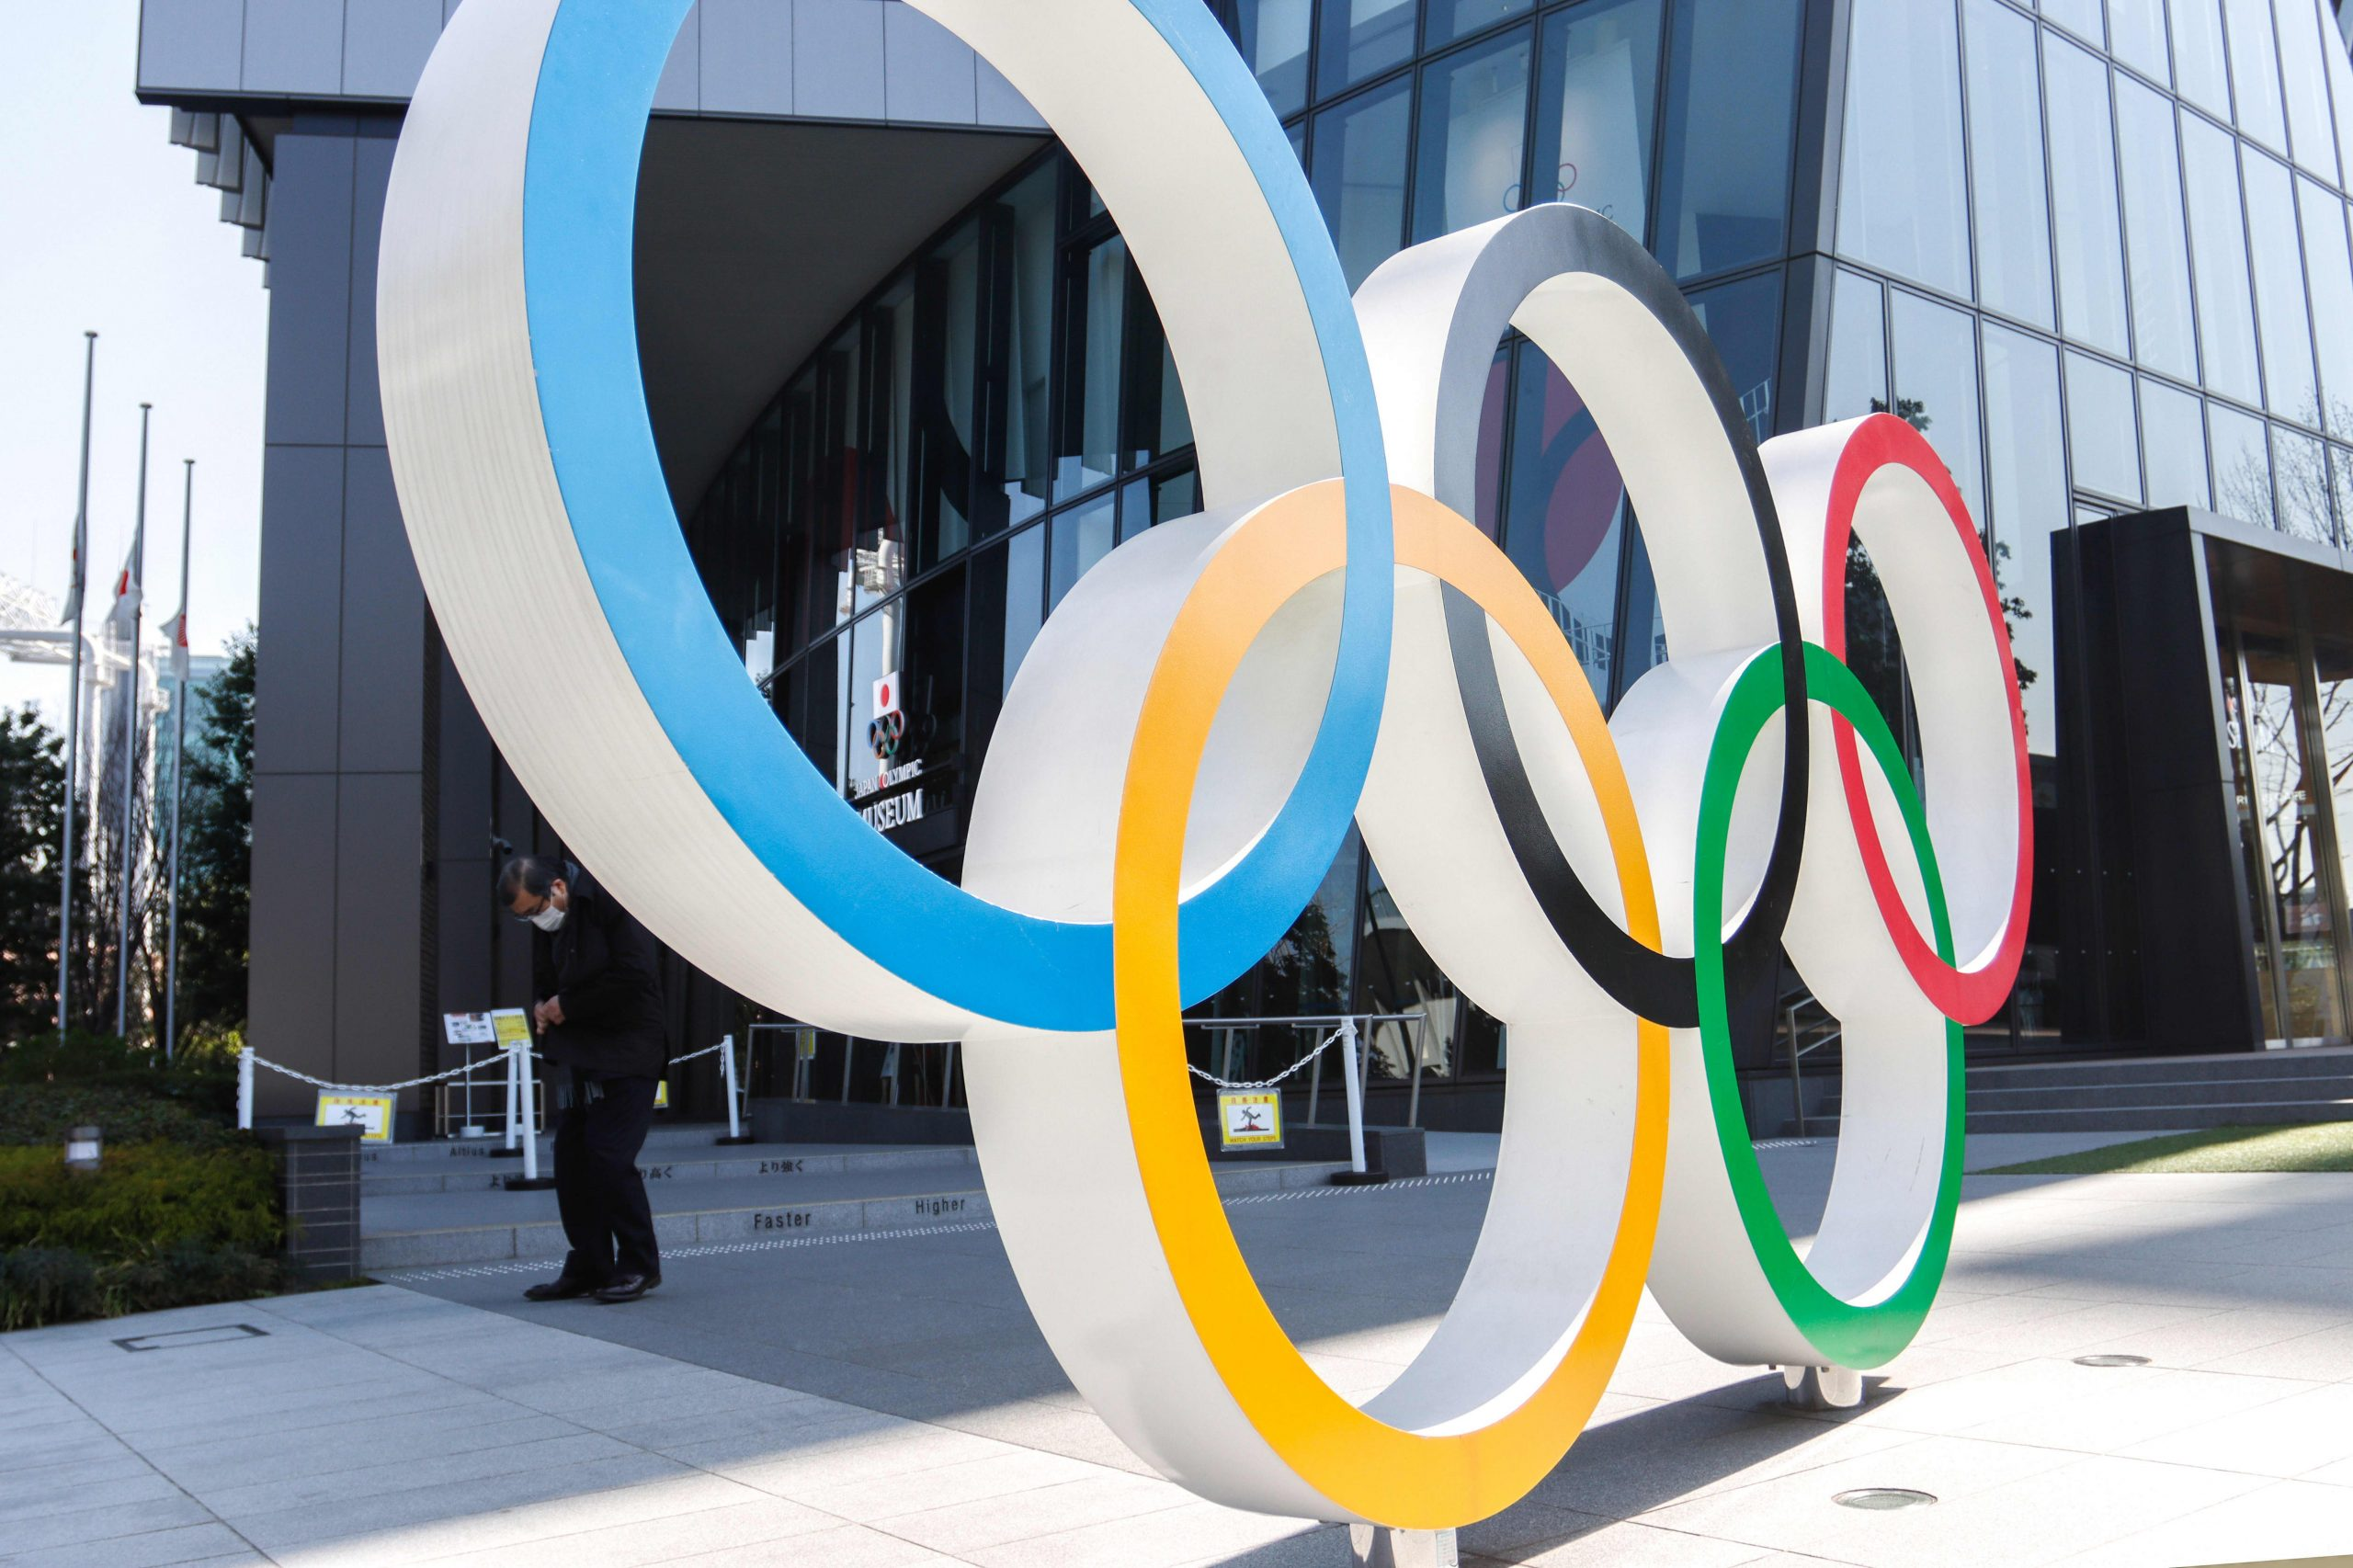 Ahead of Olympics, Japan minister says Tokyo Covid uptick could worsen